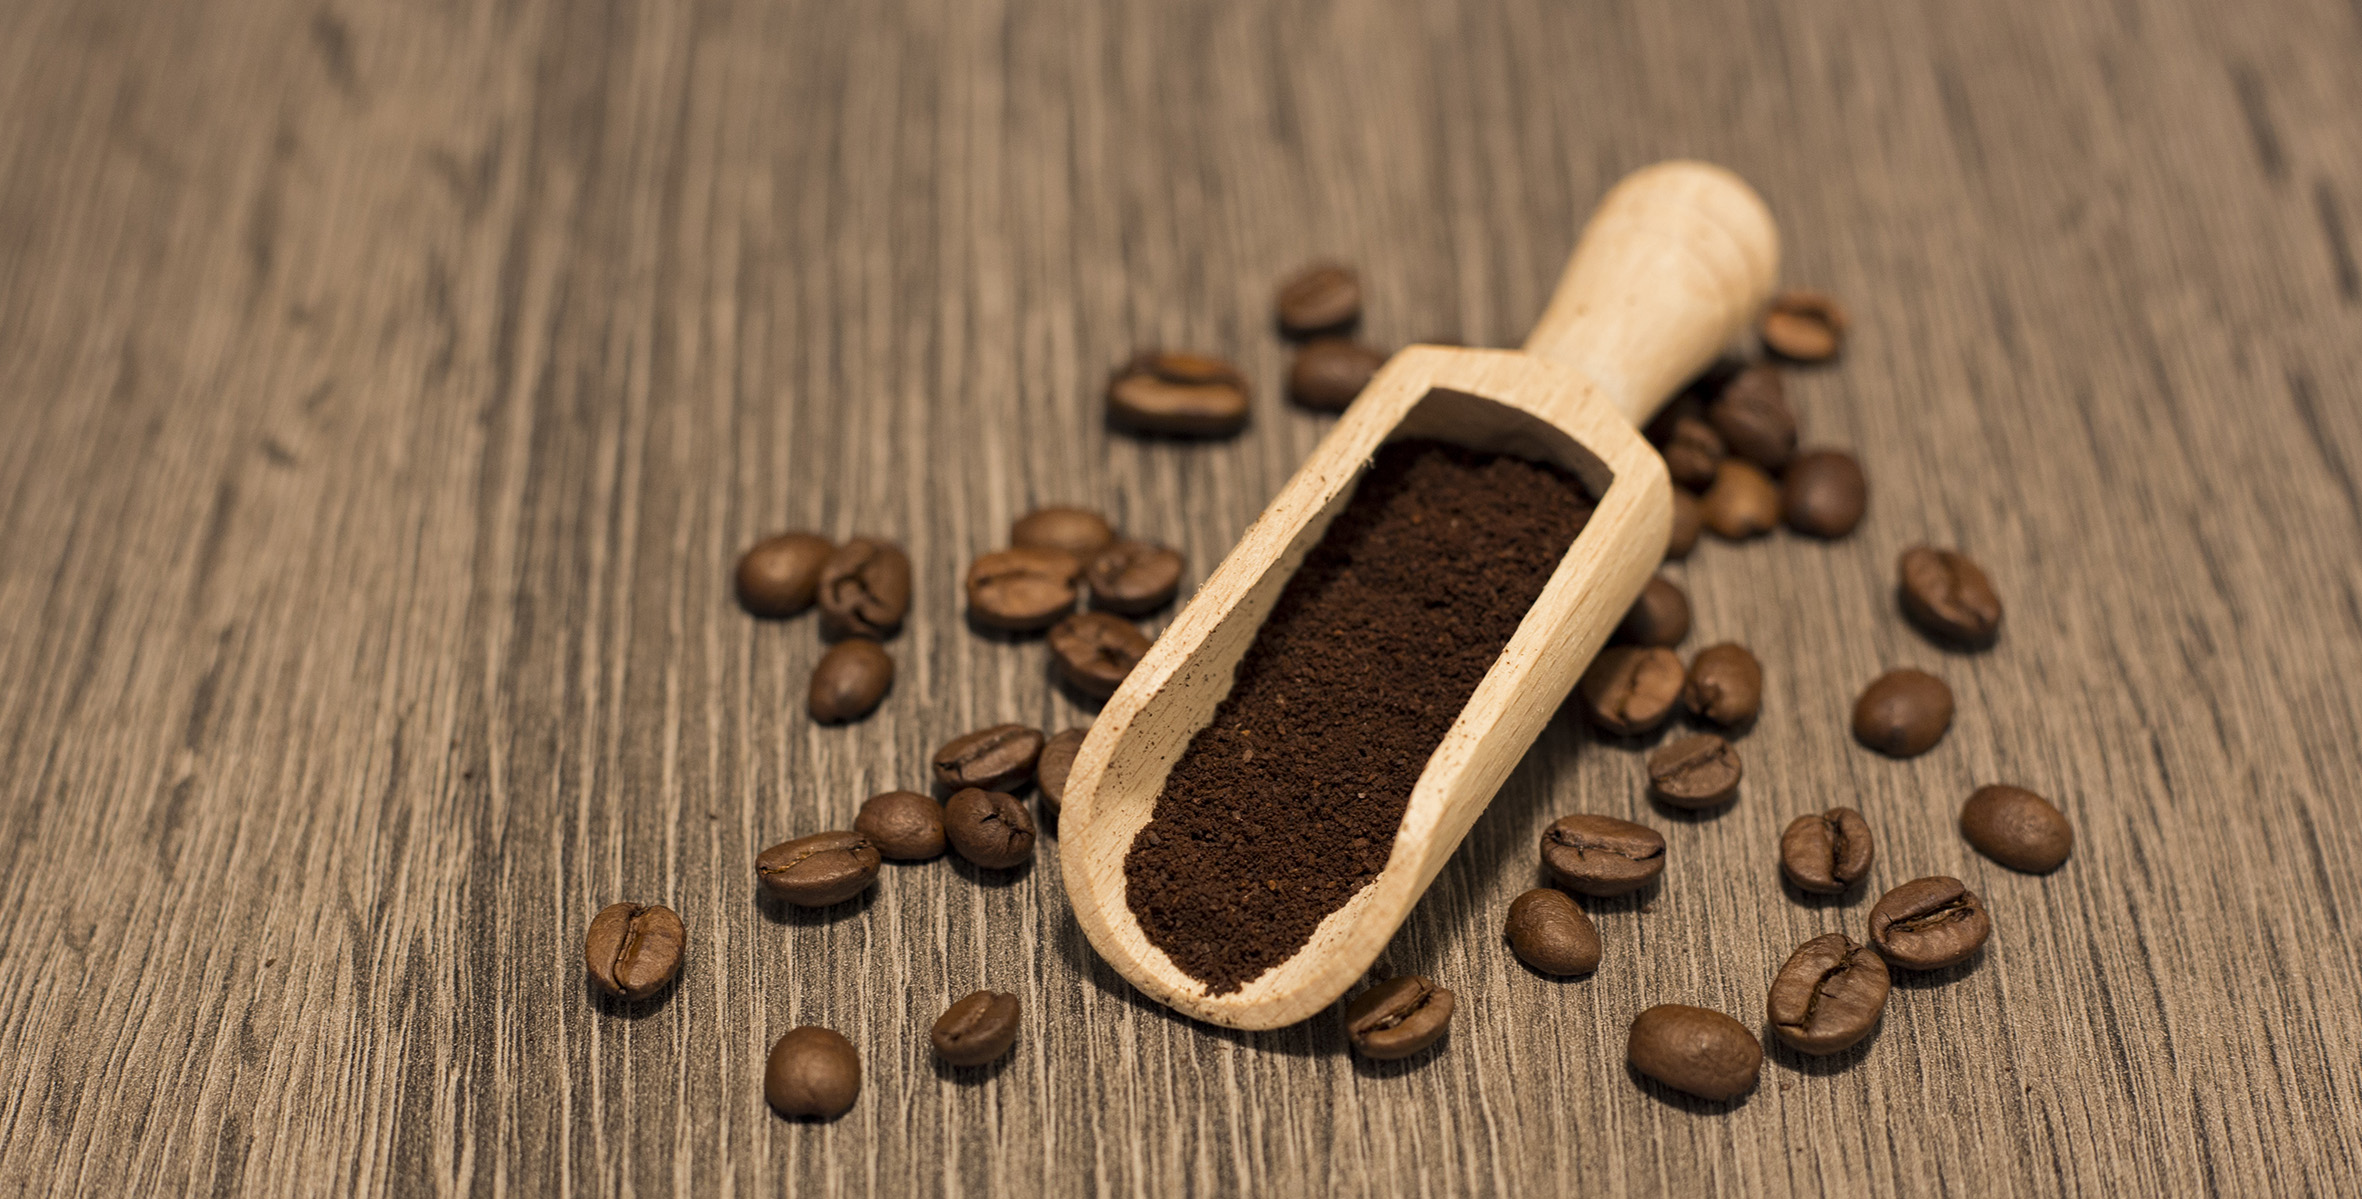 Bosch launches efficient solution for ground coffee manufacturers at Specialty Coffee Expo